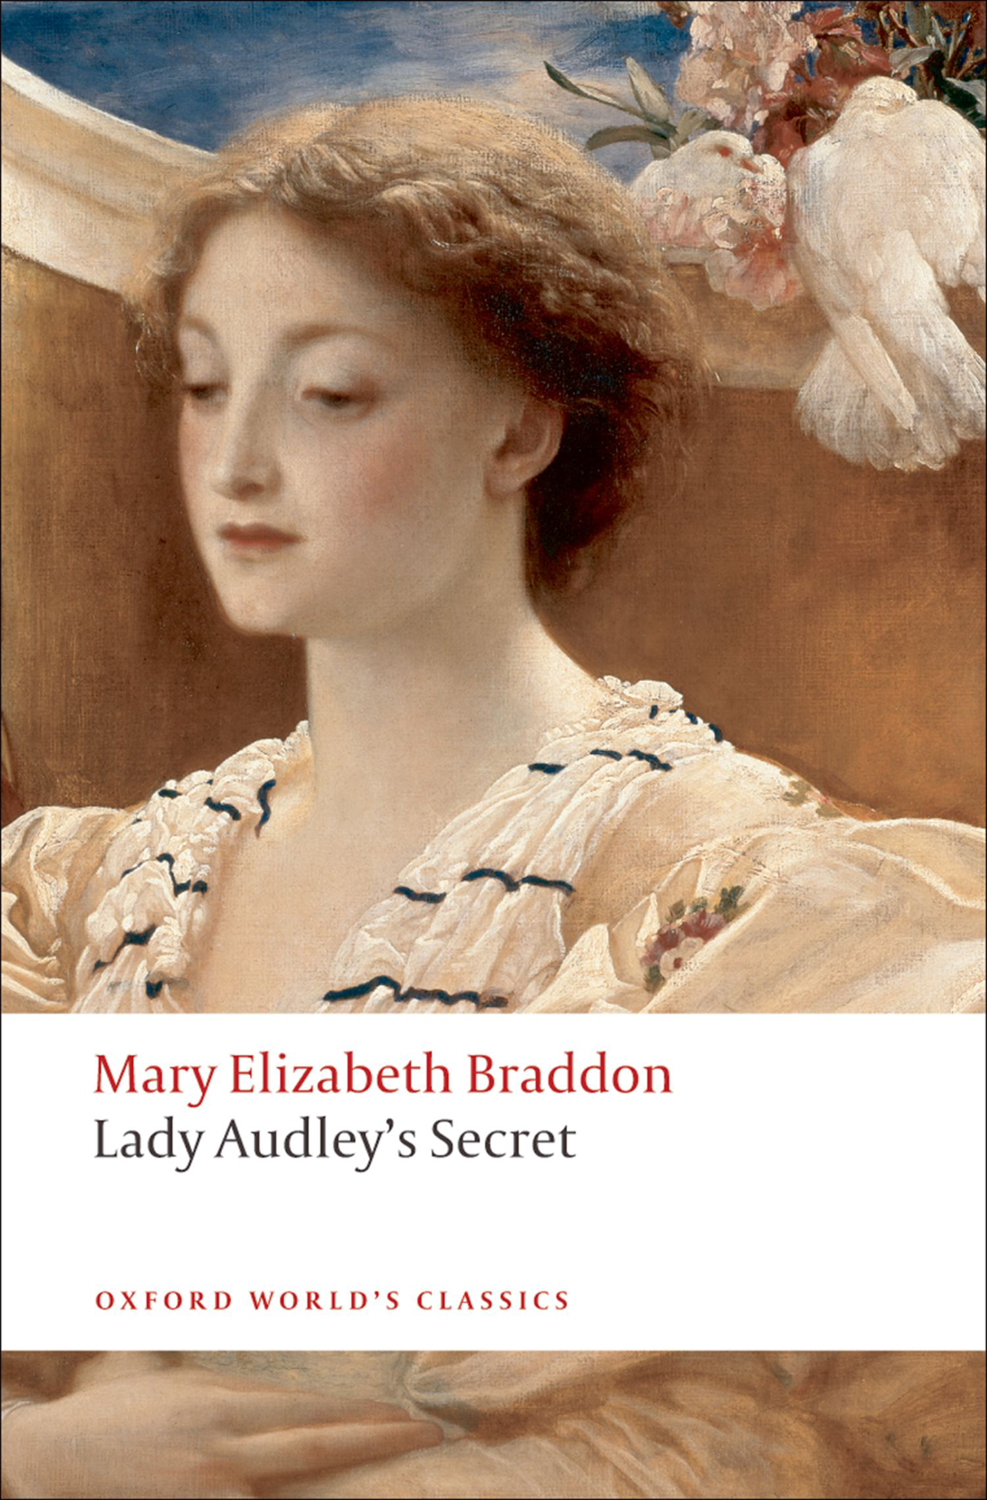 audleys essay lady secret Essay editing services join now log in home literature essays lady audley's secret the role of gender and sexuality in lady audley's secret the role of gender.